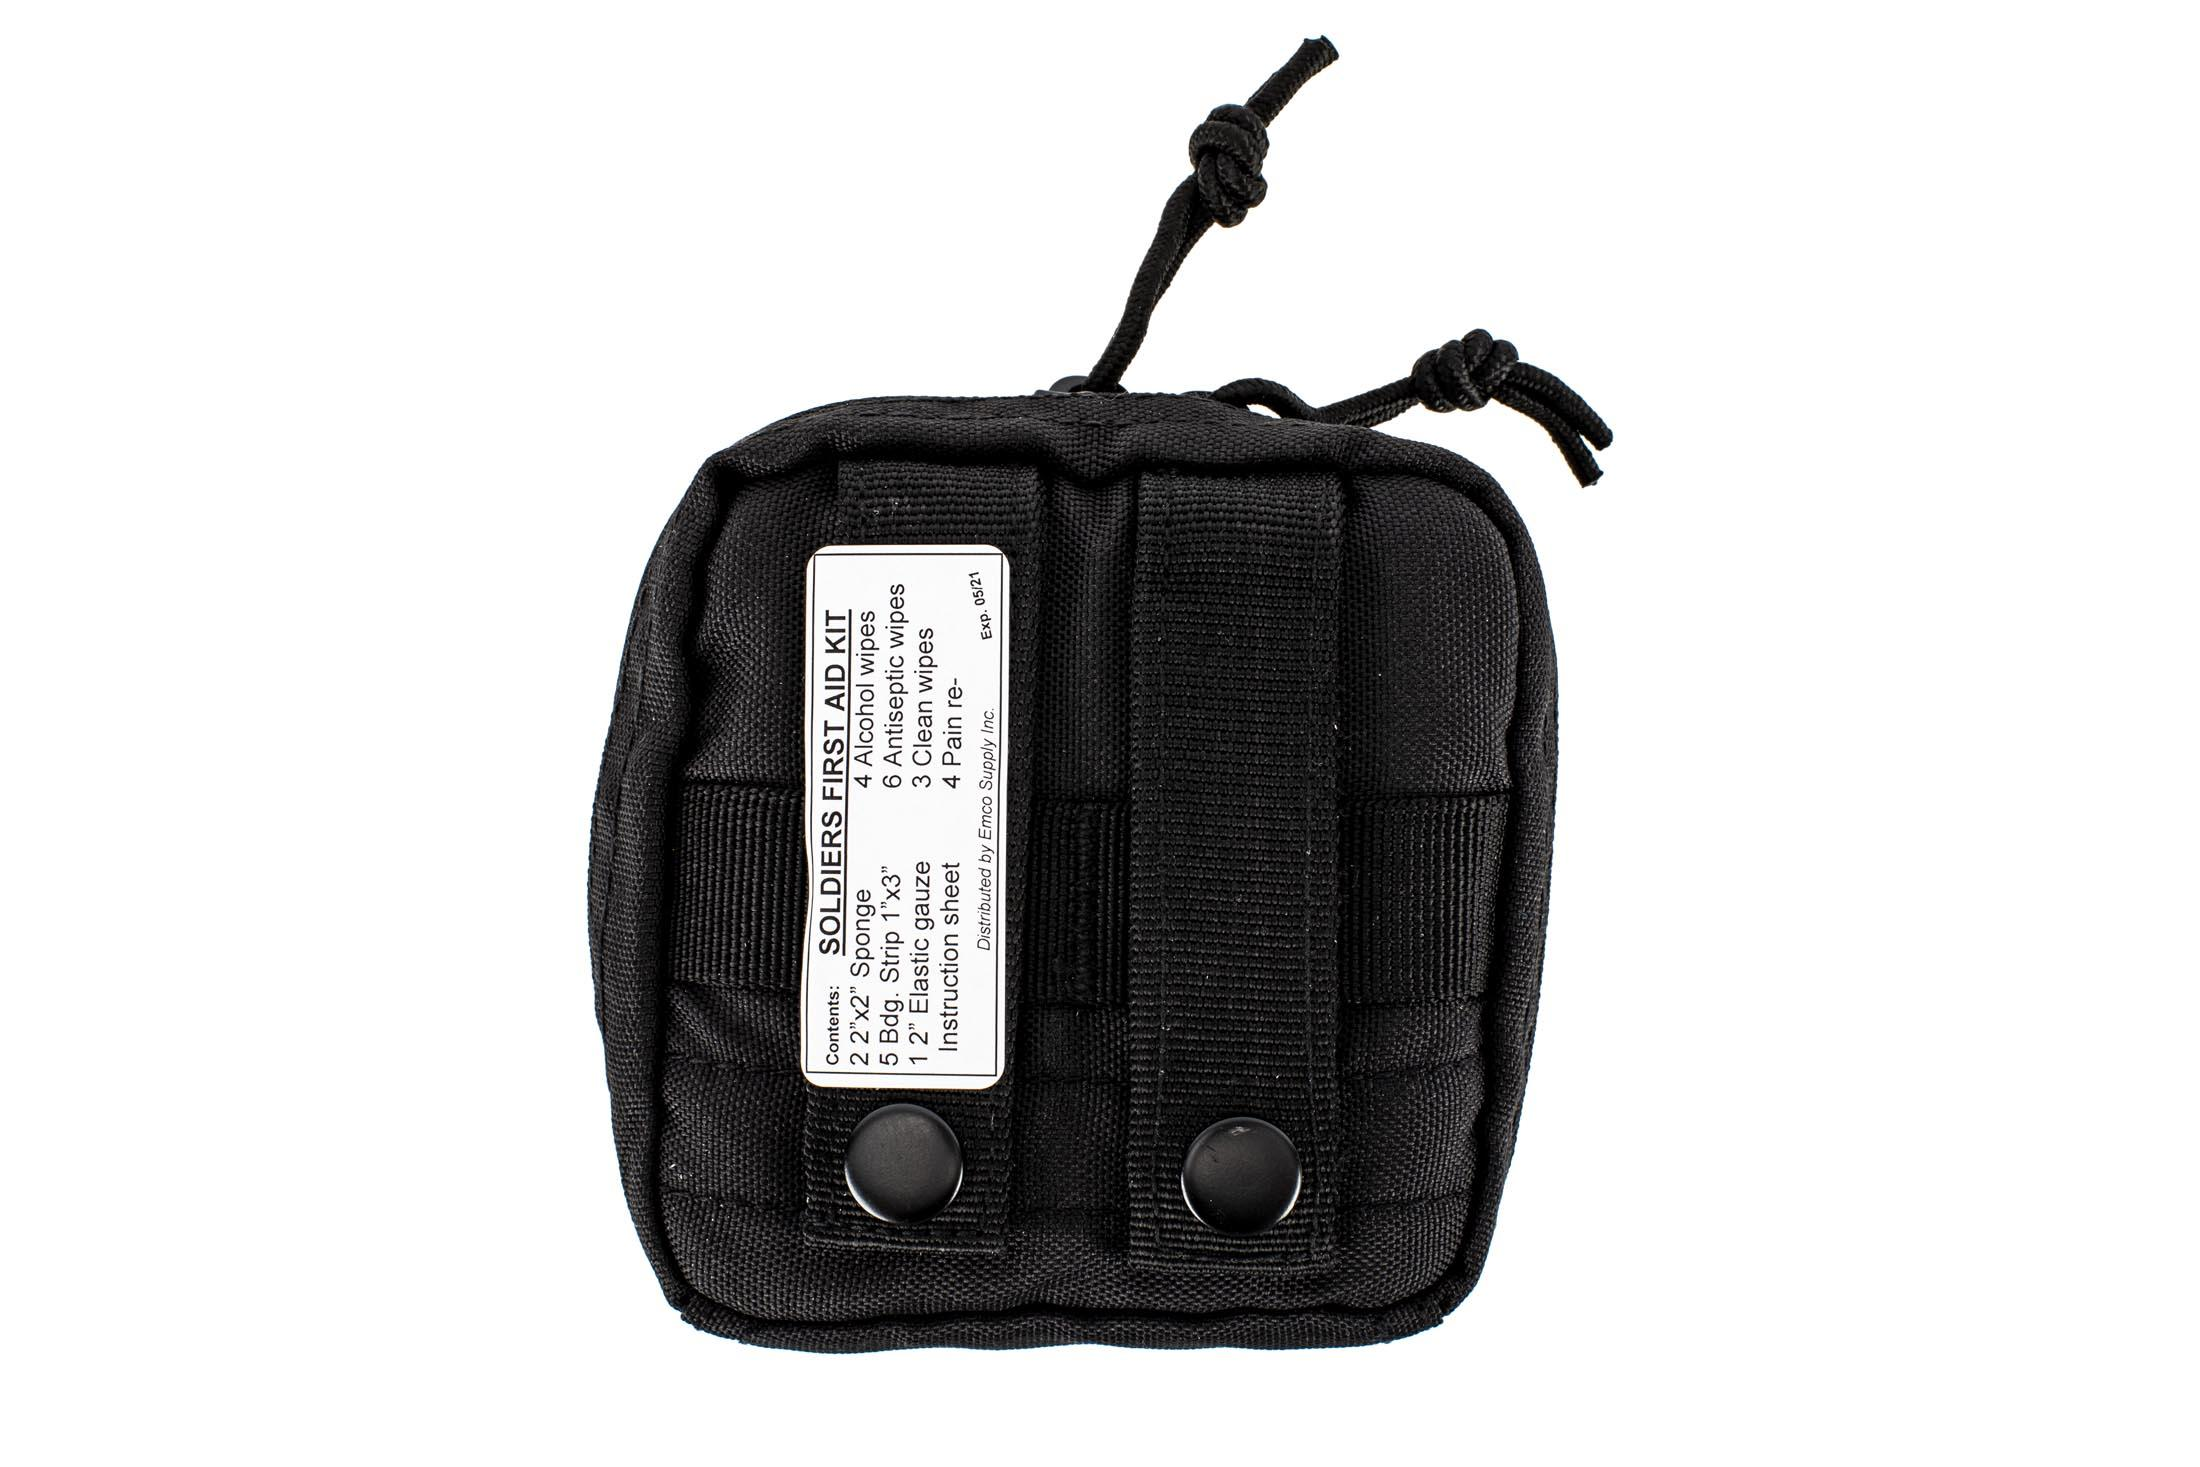 The Red Rock Outdoors Individual first aid kit is compatible with MOLLE webbing attachments